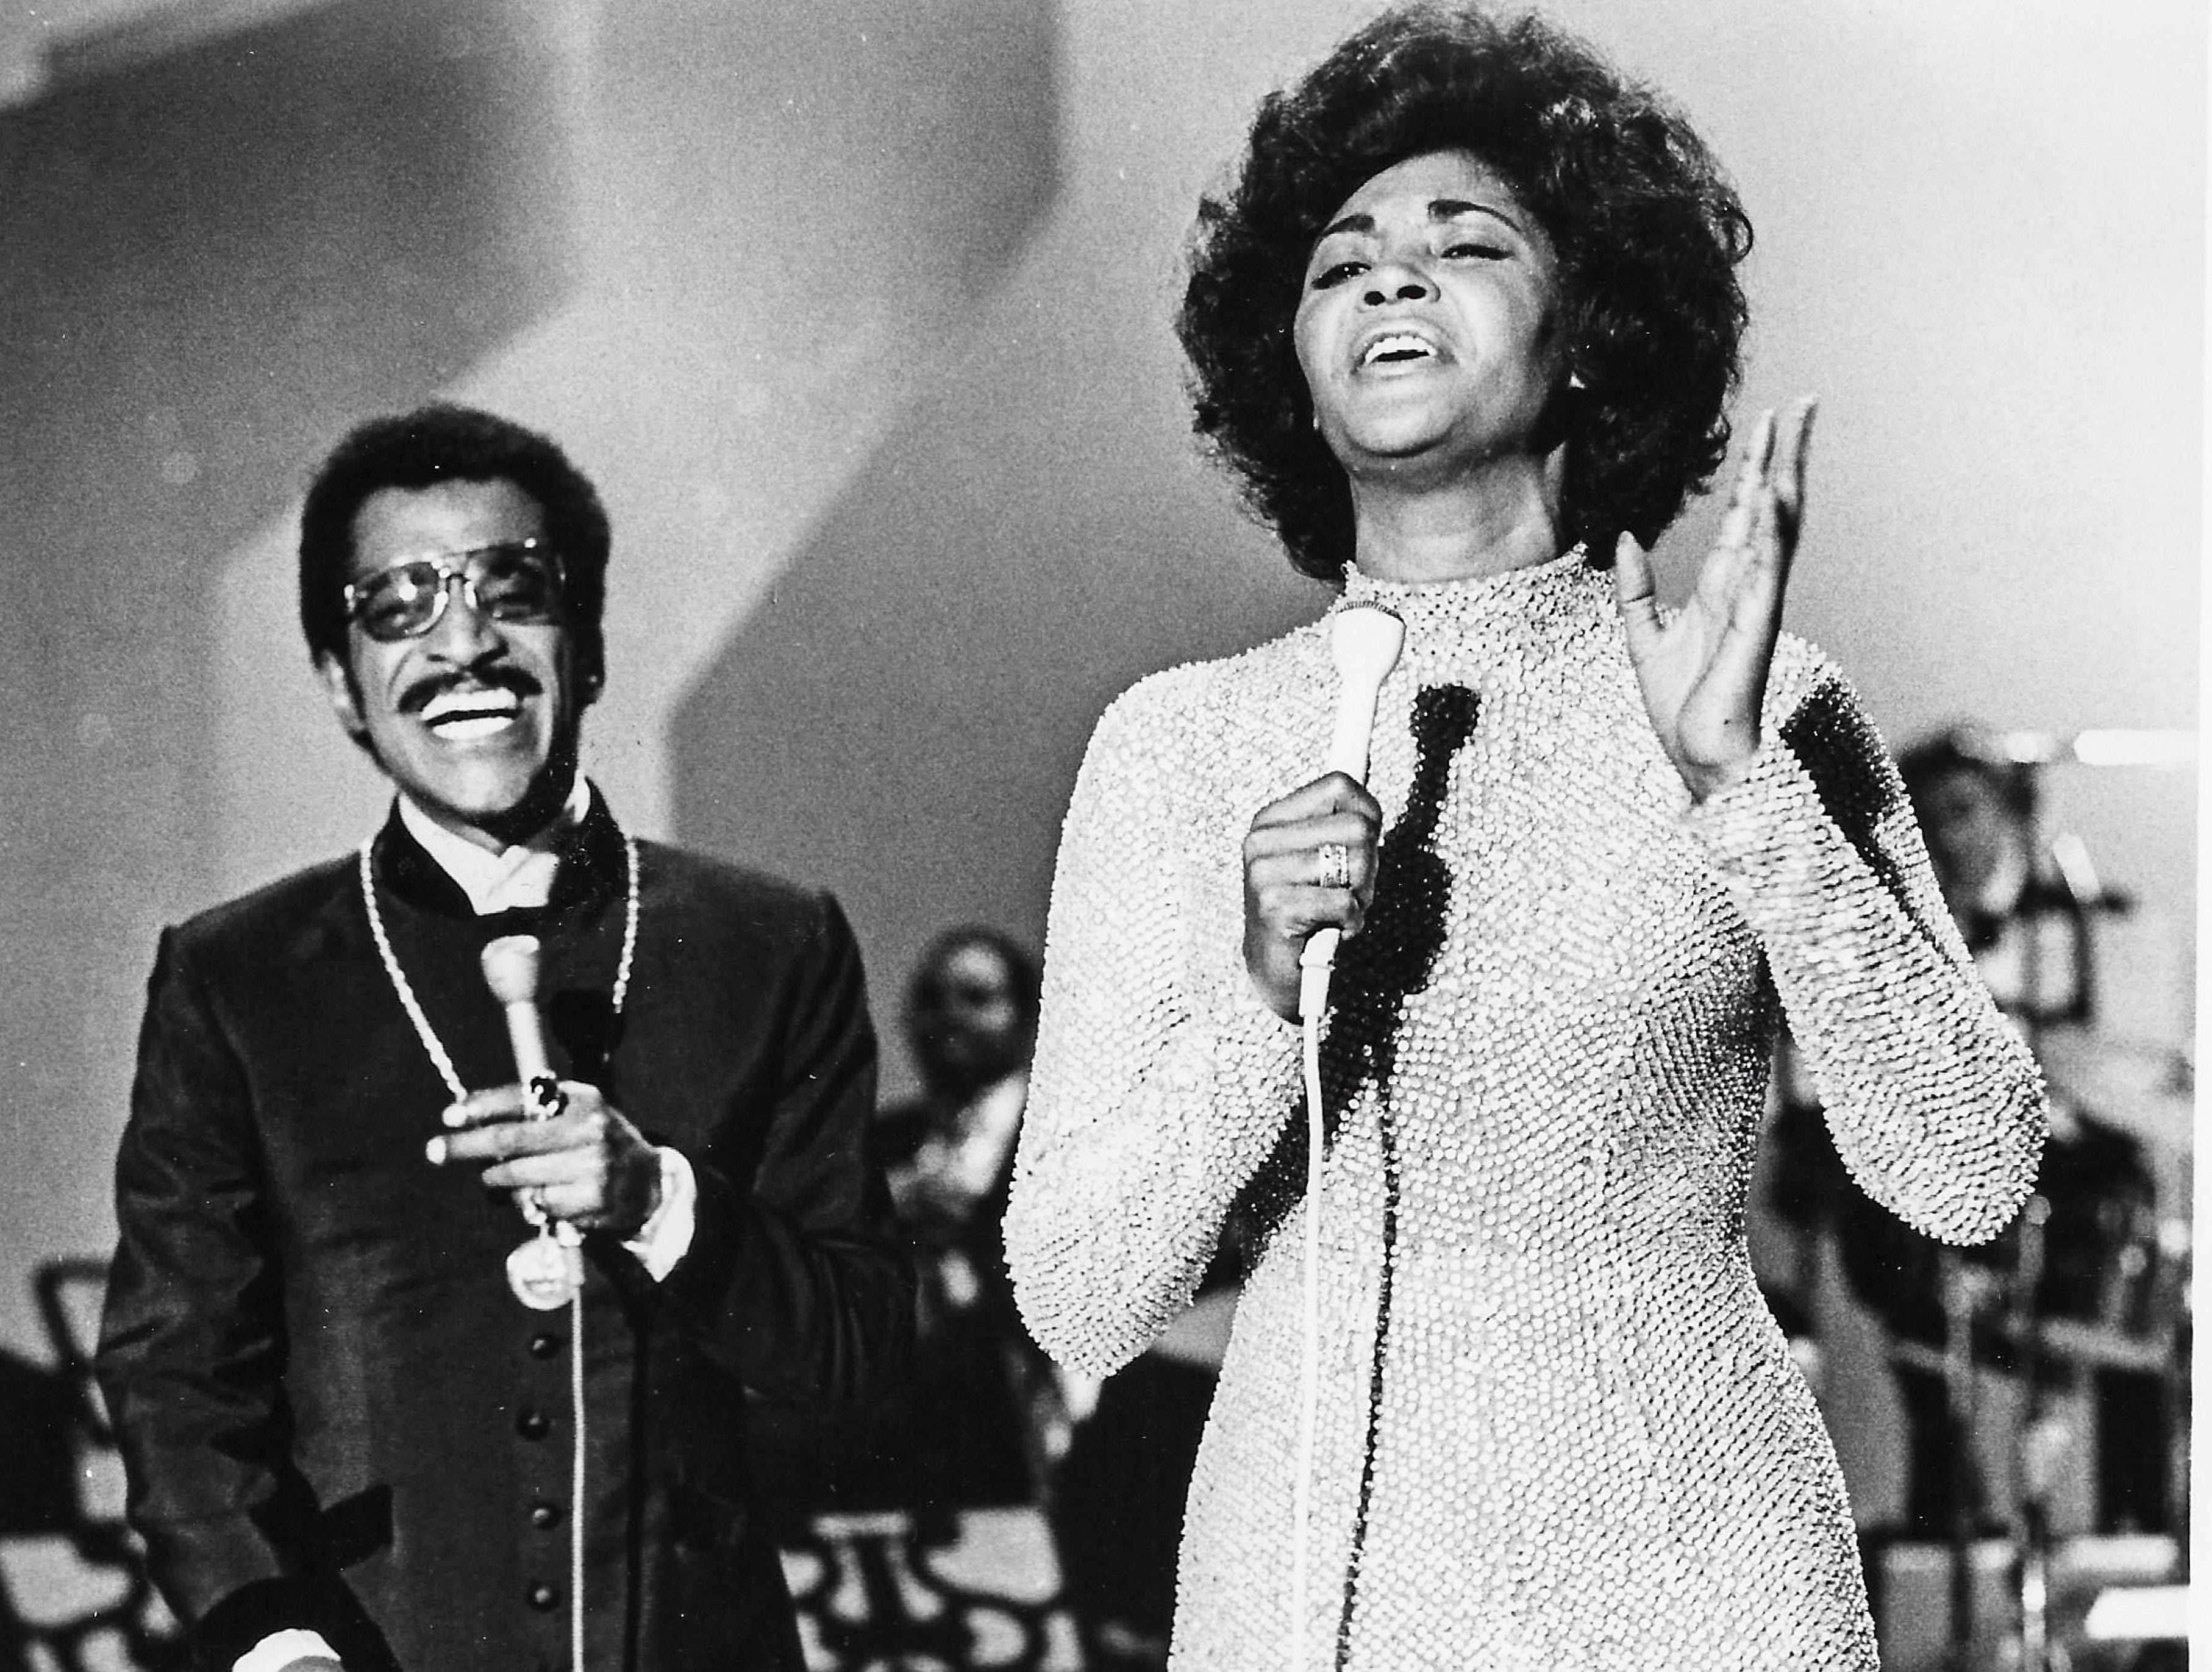 "Sammy Davis, Jr. is Nancy Wilson's guest in her first television special ""Monsanto Night Presents Nancy Wilson,"" which aired on Sunday, March 26, 1972, on WBNS 10 TV. Miss Wilson's other guests included three-time Academy Award winner Henry Mancini, singer and talk show host Mike Douglas, and the Staple Singers, who performed their big hit ""Respect Yourself."""